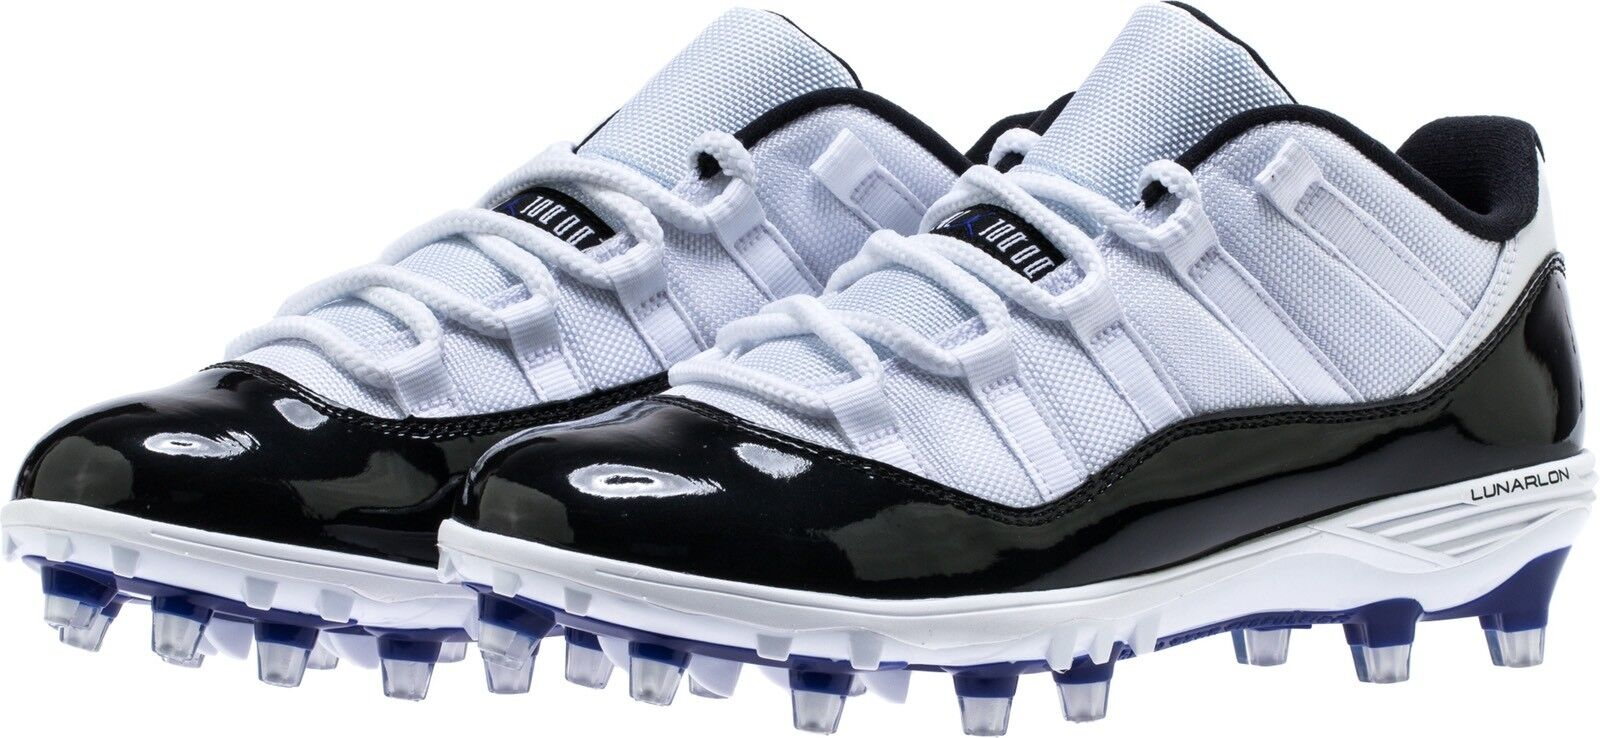 Jordan XI Retro TD Low Concord Size 10.5 Football Cleats Spikes 11 White Black